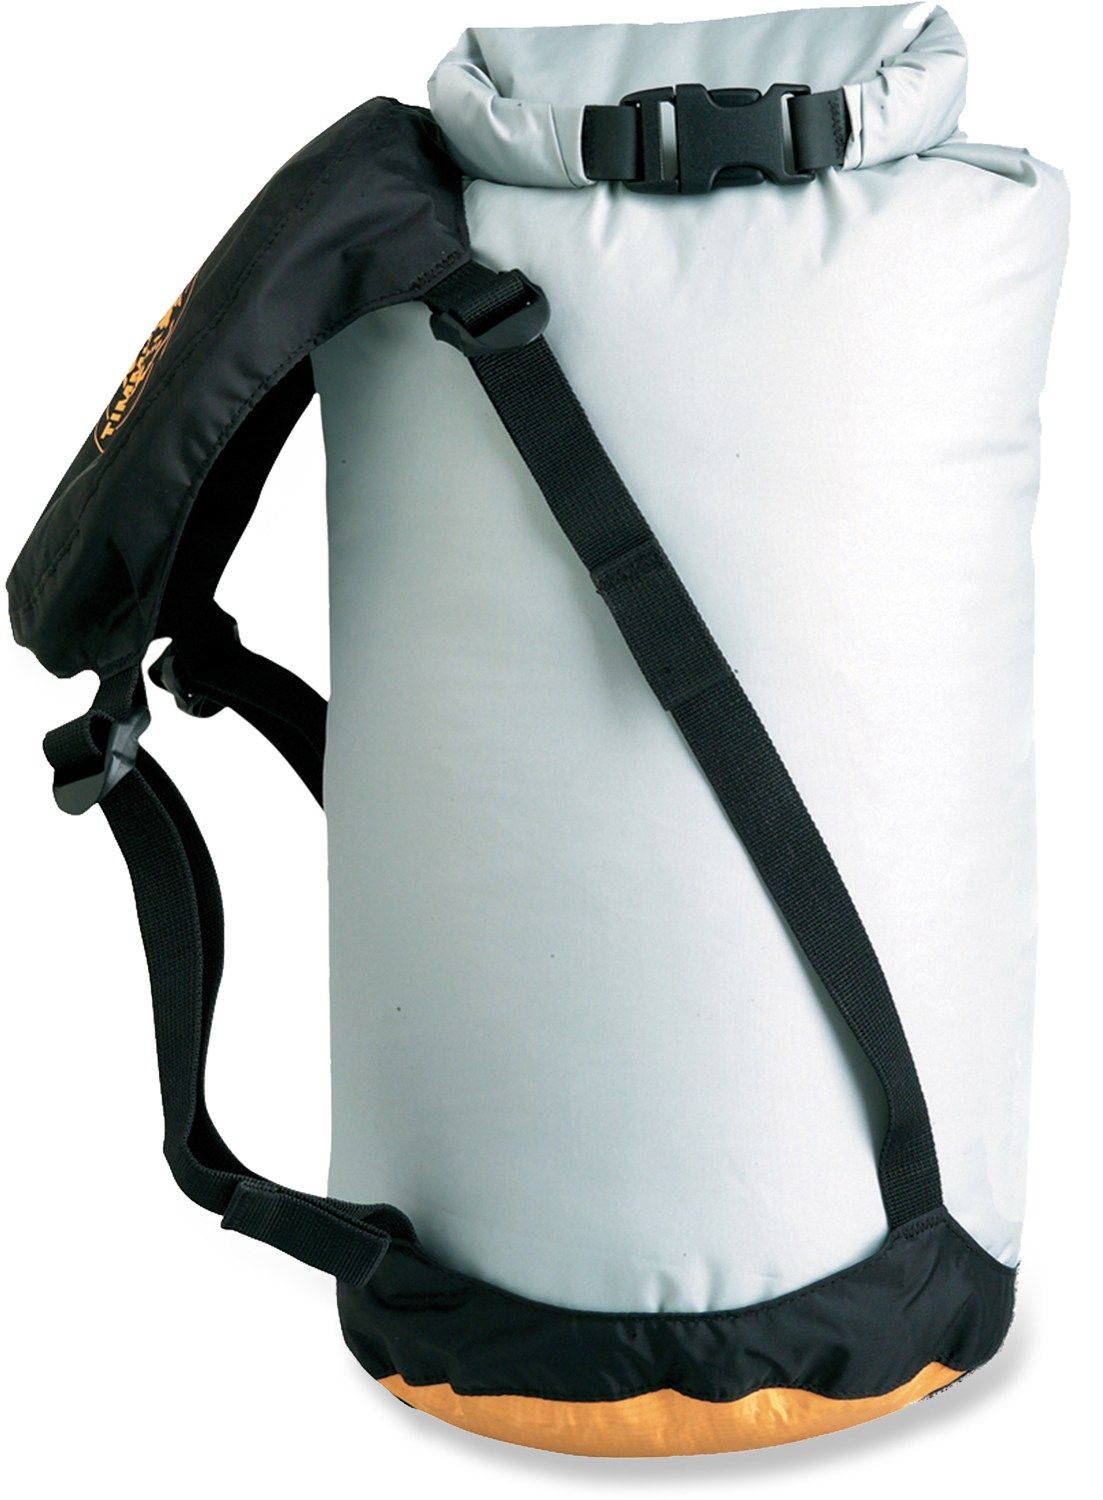 Photo of Sea to Summit compression sack. Great for saving space and keeping my stuff dry …